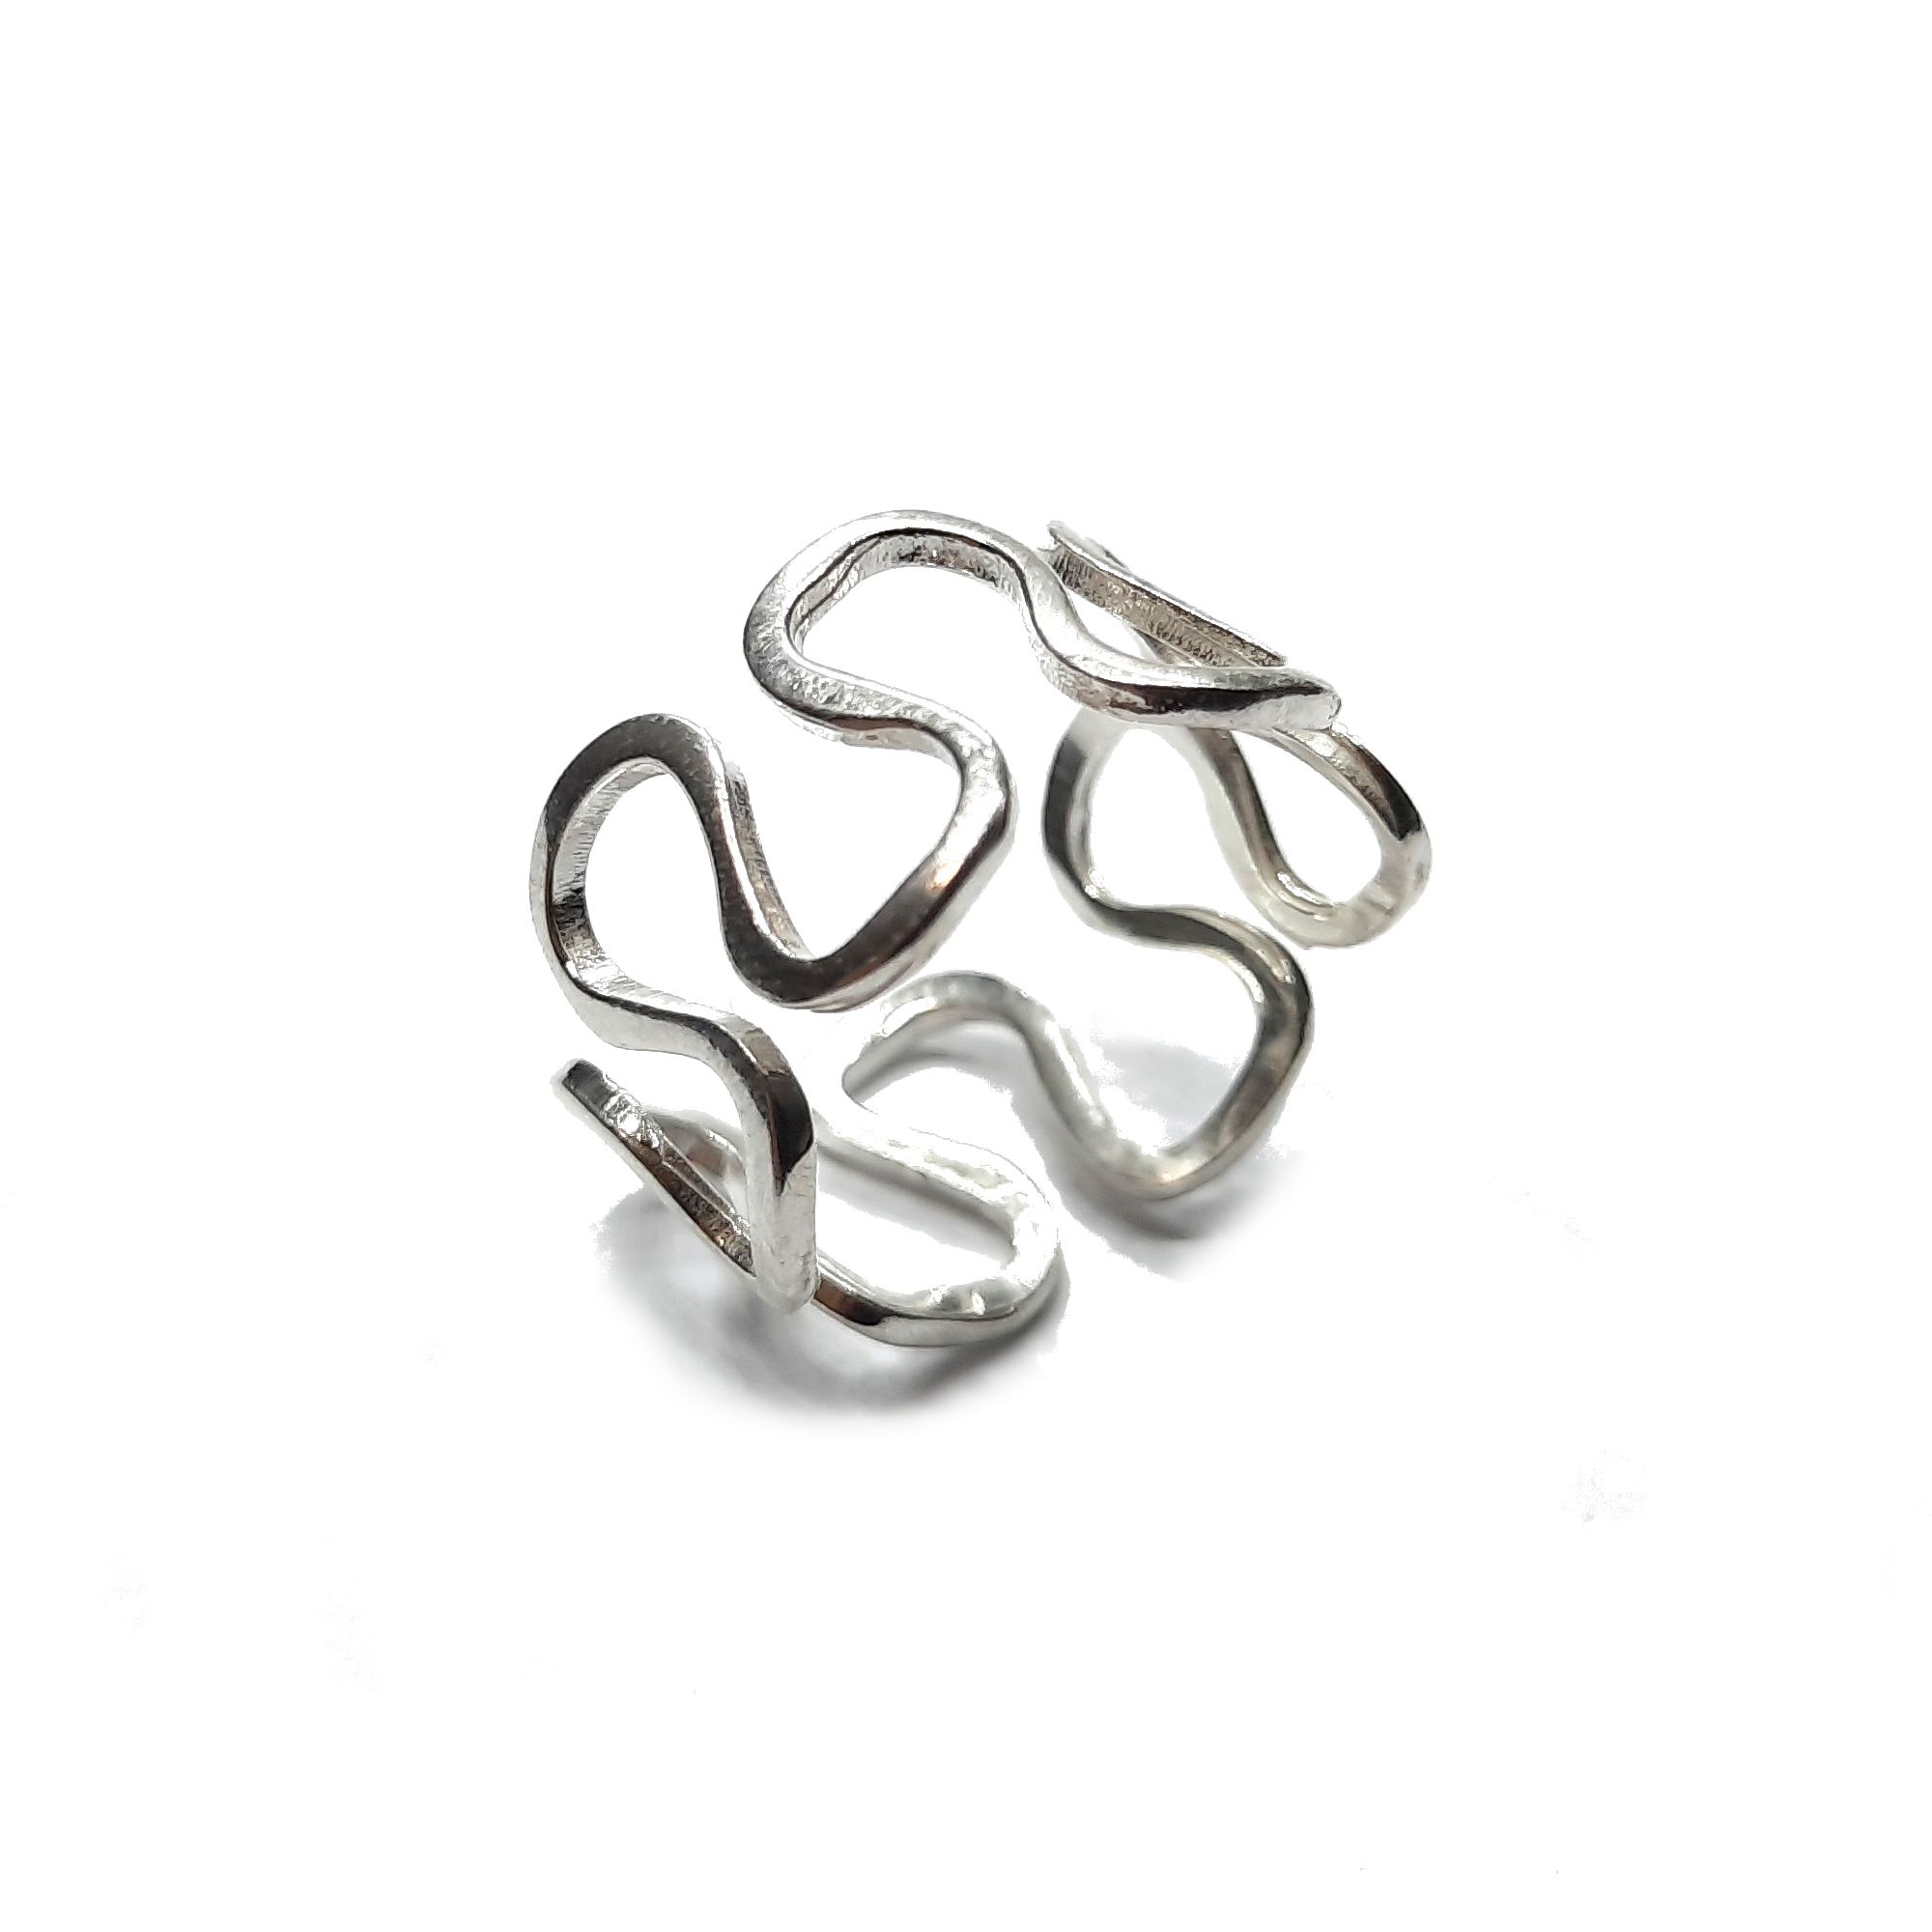 Silver ring - R002200